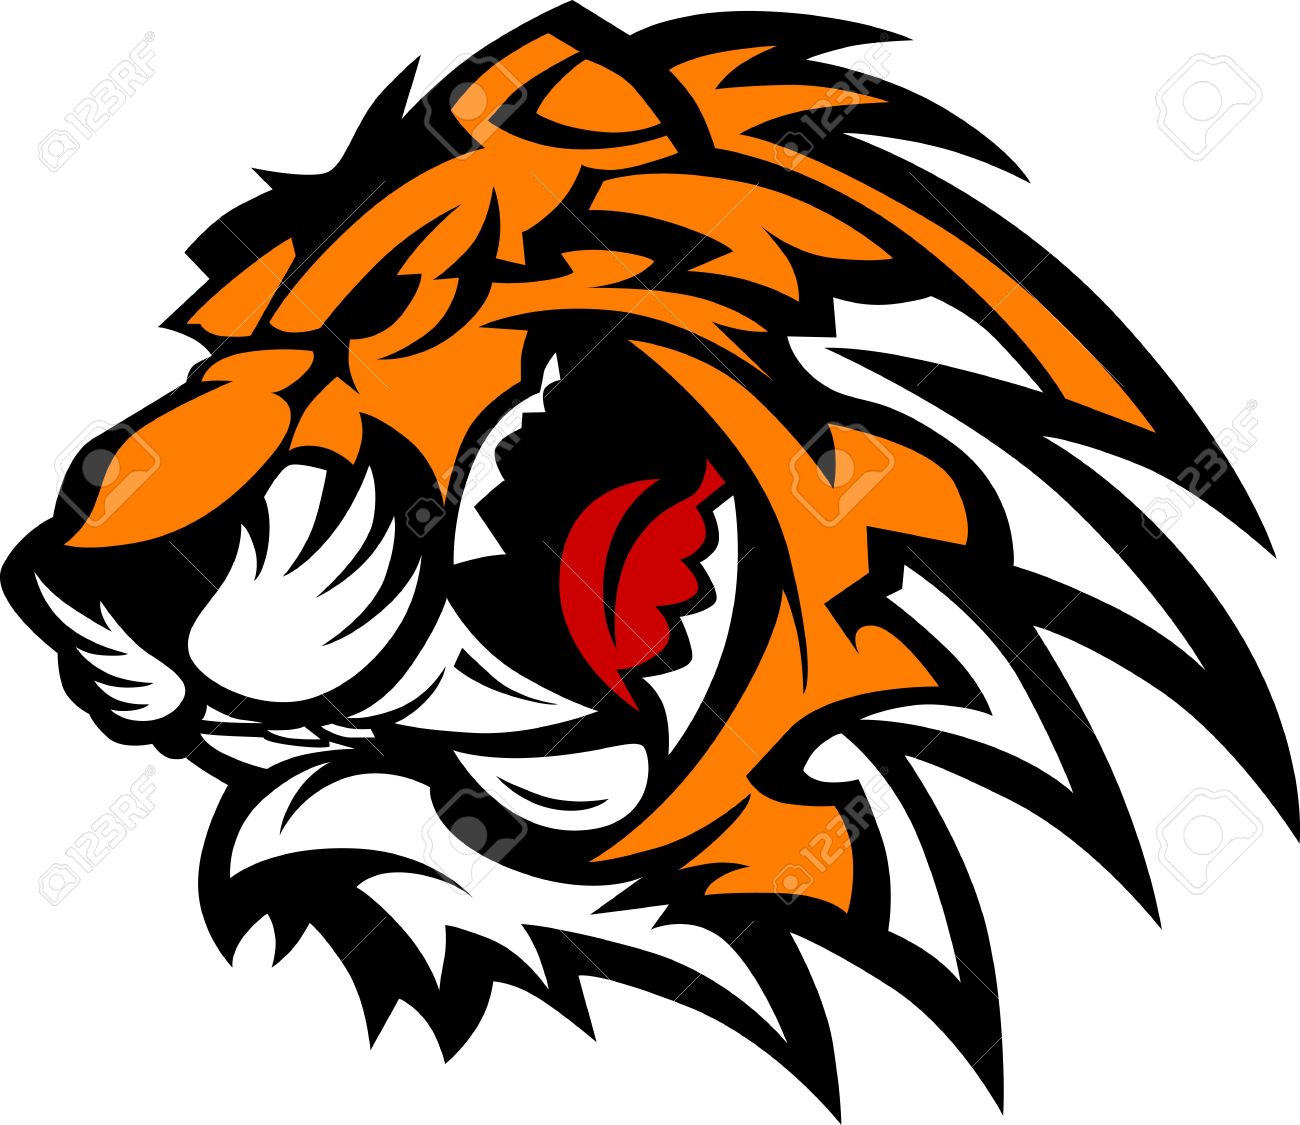 Tiger Mascot Graphic Stock Vector - 10282019